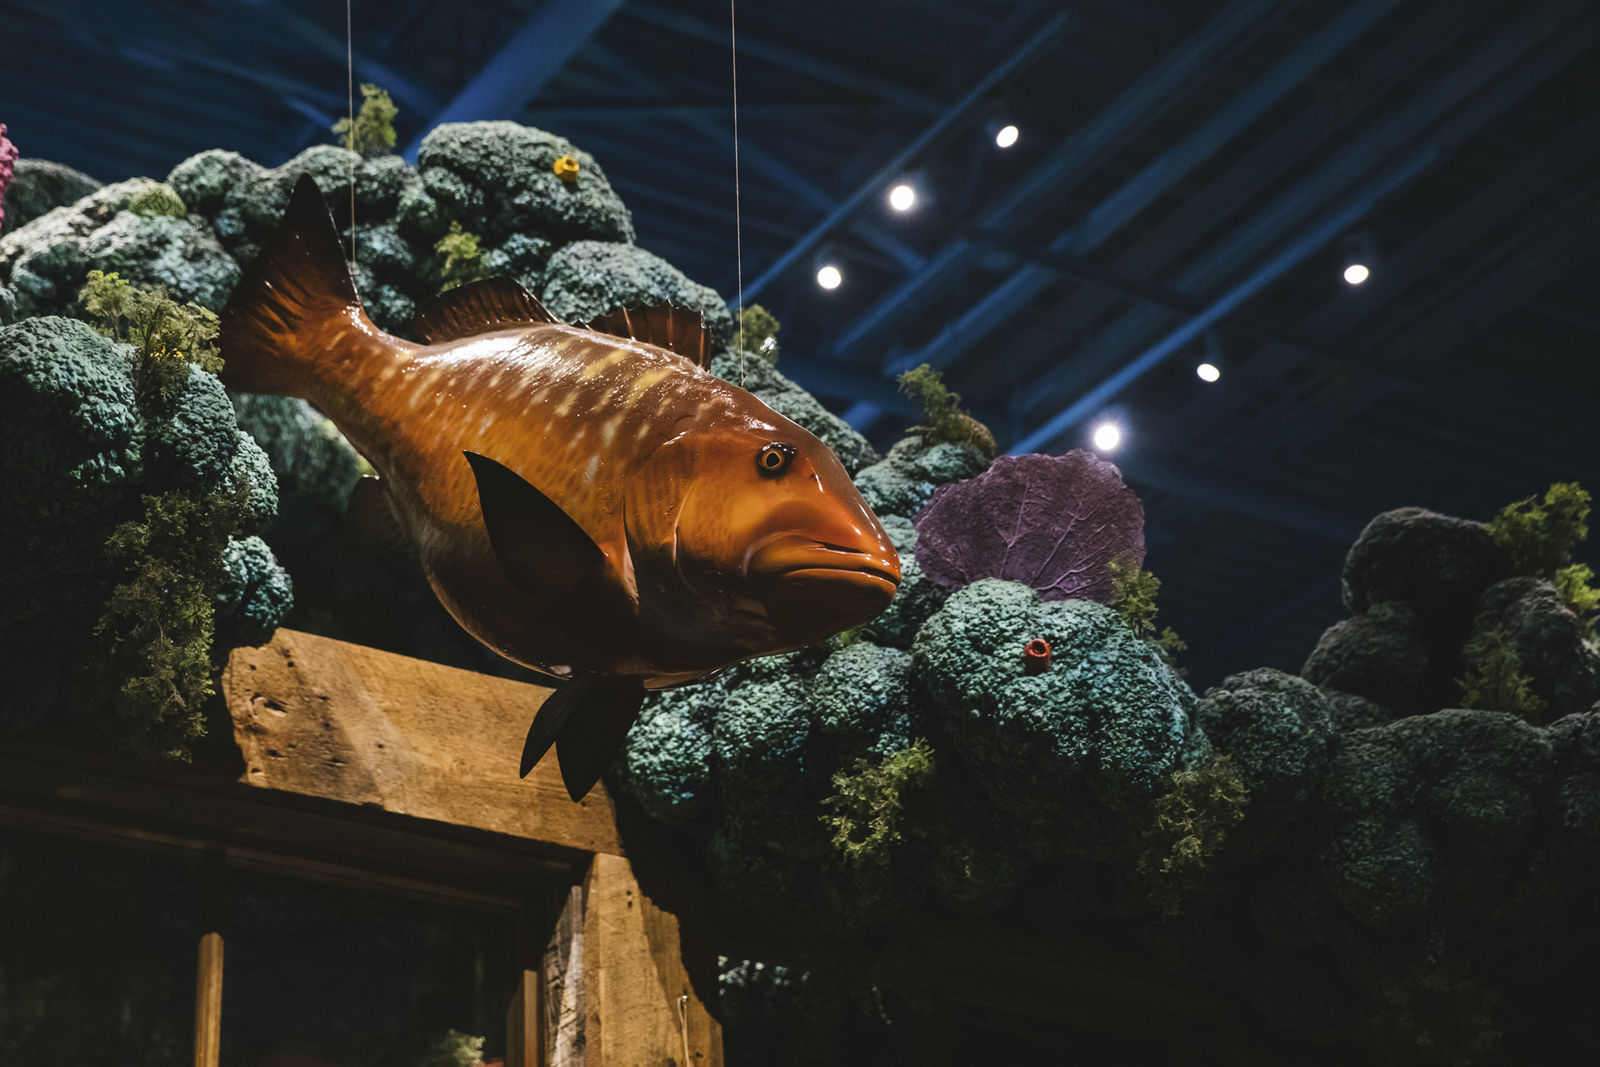 Photos Ocean Themed Tacoma Restaurant Bowling Alley Is An Absolute Catch Komo